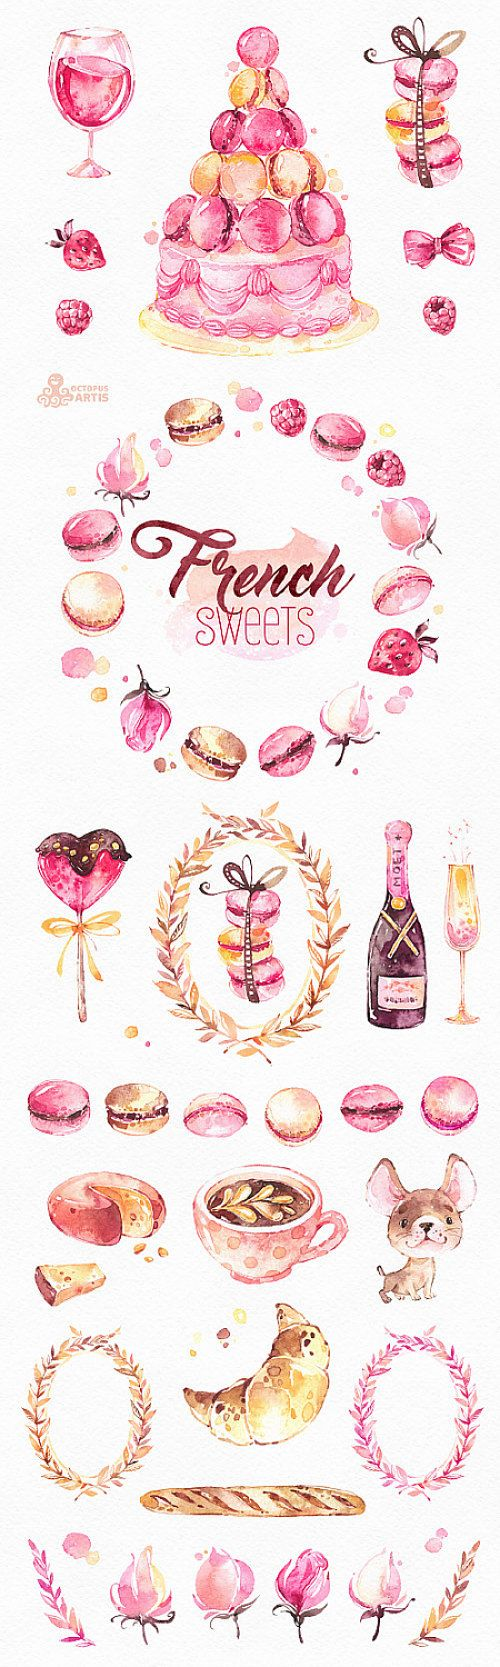 This is an french collection of sweets includes 40 handpainted watercolor images. Perfect graphic for diy projects, brand identity, invitations, cards, logos, photos, posters, wallarts, quotes, diy and more.  -----------------------------------------------------------------  INSTANT DOWNLOAD Once payment is cleared, you can download your files directly from your Etsy account.  -----------------------------------------------------------------  This listing includes:  40 x Different Graphic…